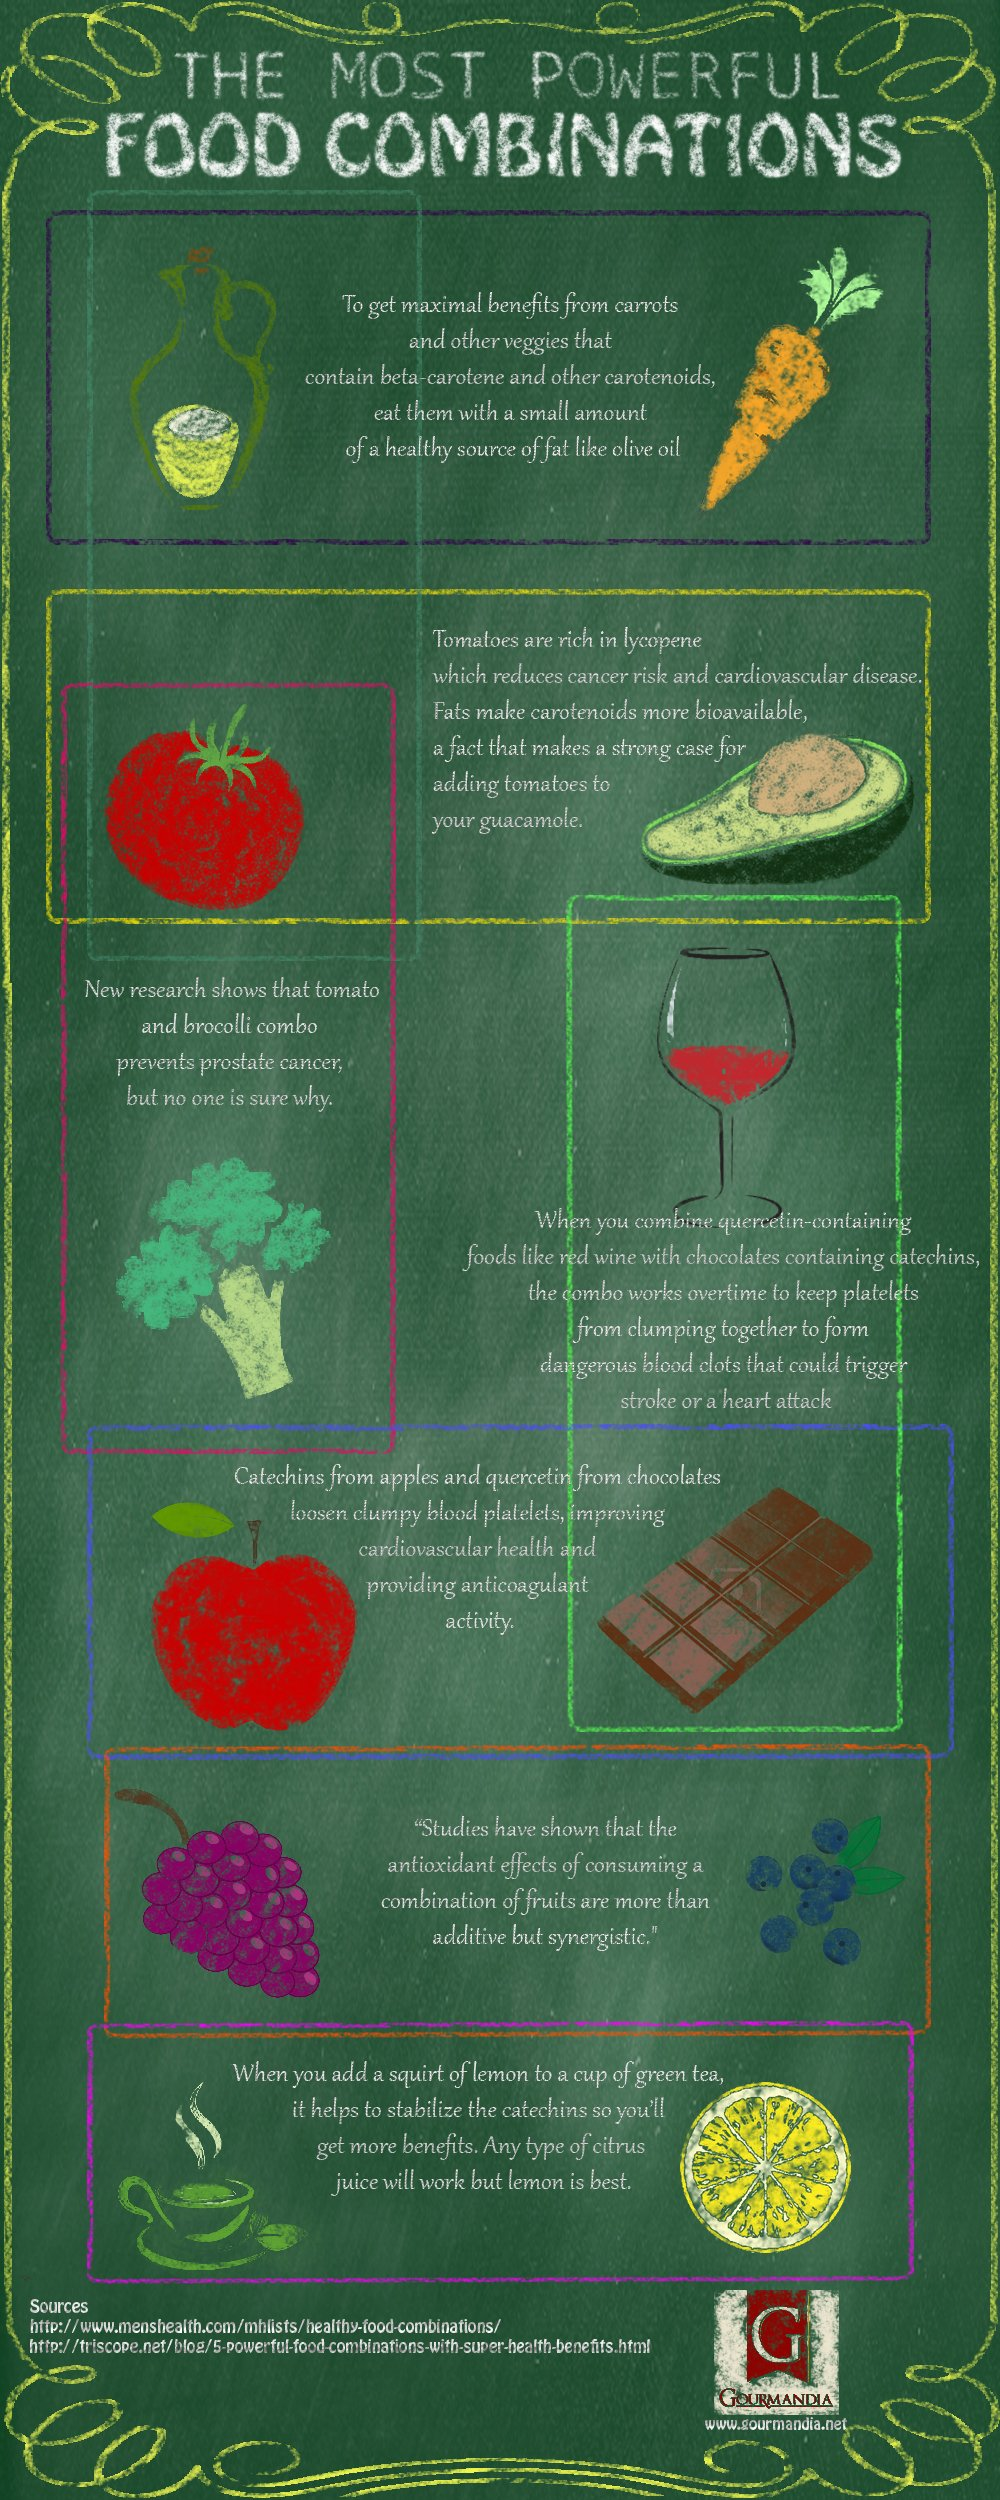 Health Superpowers: Food Combinations that Protect and Care - Infographic